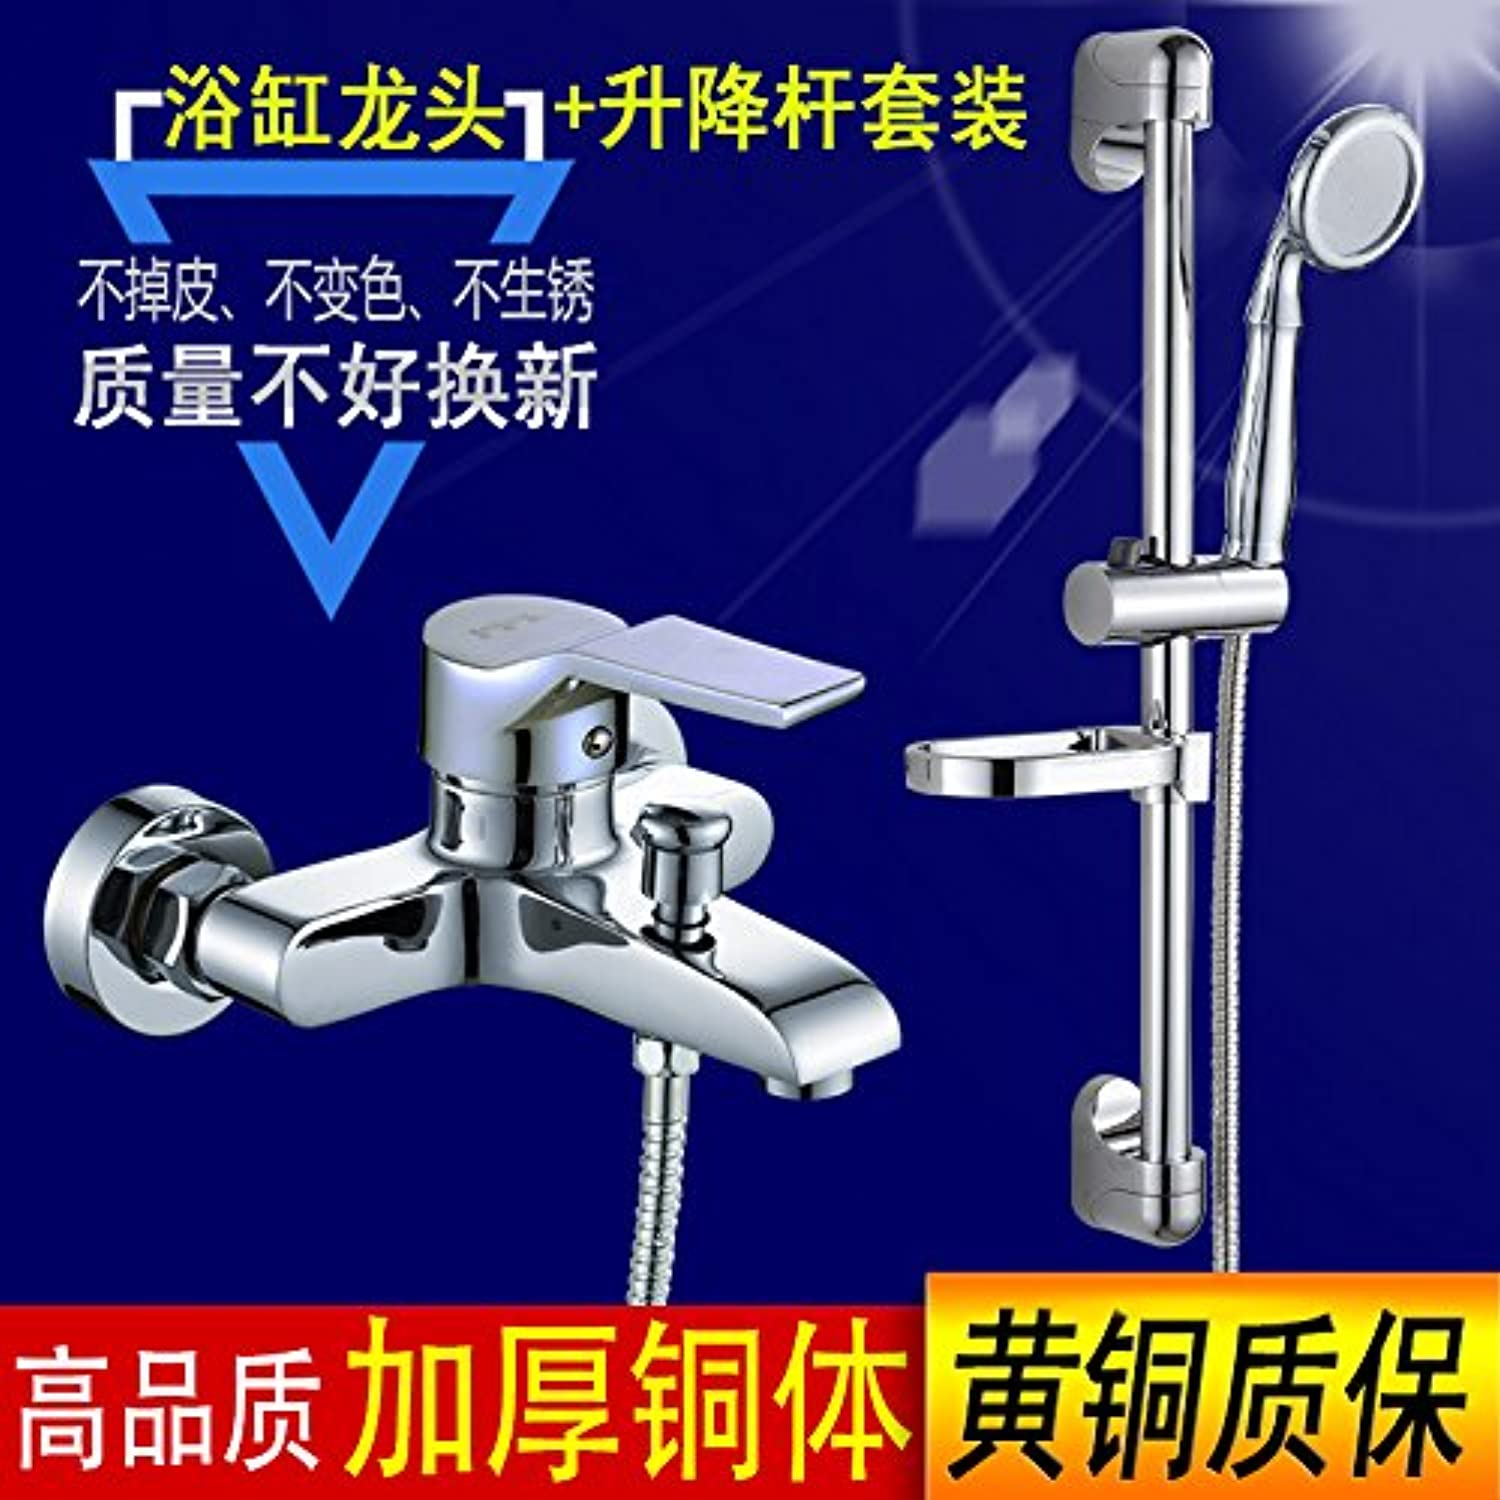 Kitchen Or Bathroom Sink Mixer Tap The Copper Shower Water Tap Bath Three Simple Hot And Cold Shower Set Flush Water Mixing Valve Into The Wall Thickness, 7773 Taps +3 Feature Bright + Lift Lever Kit